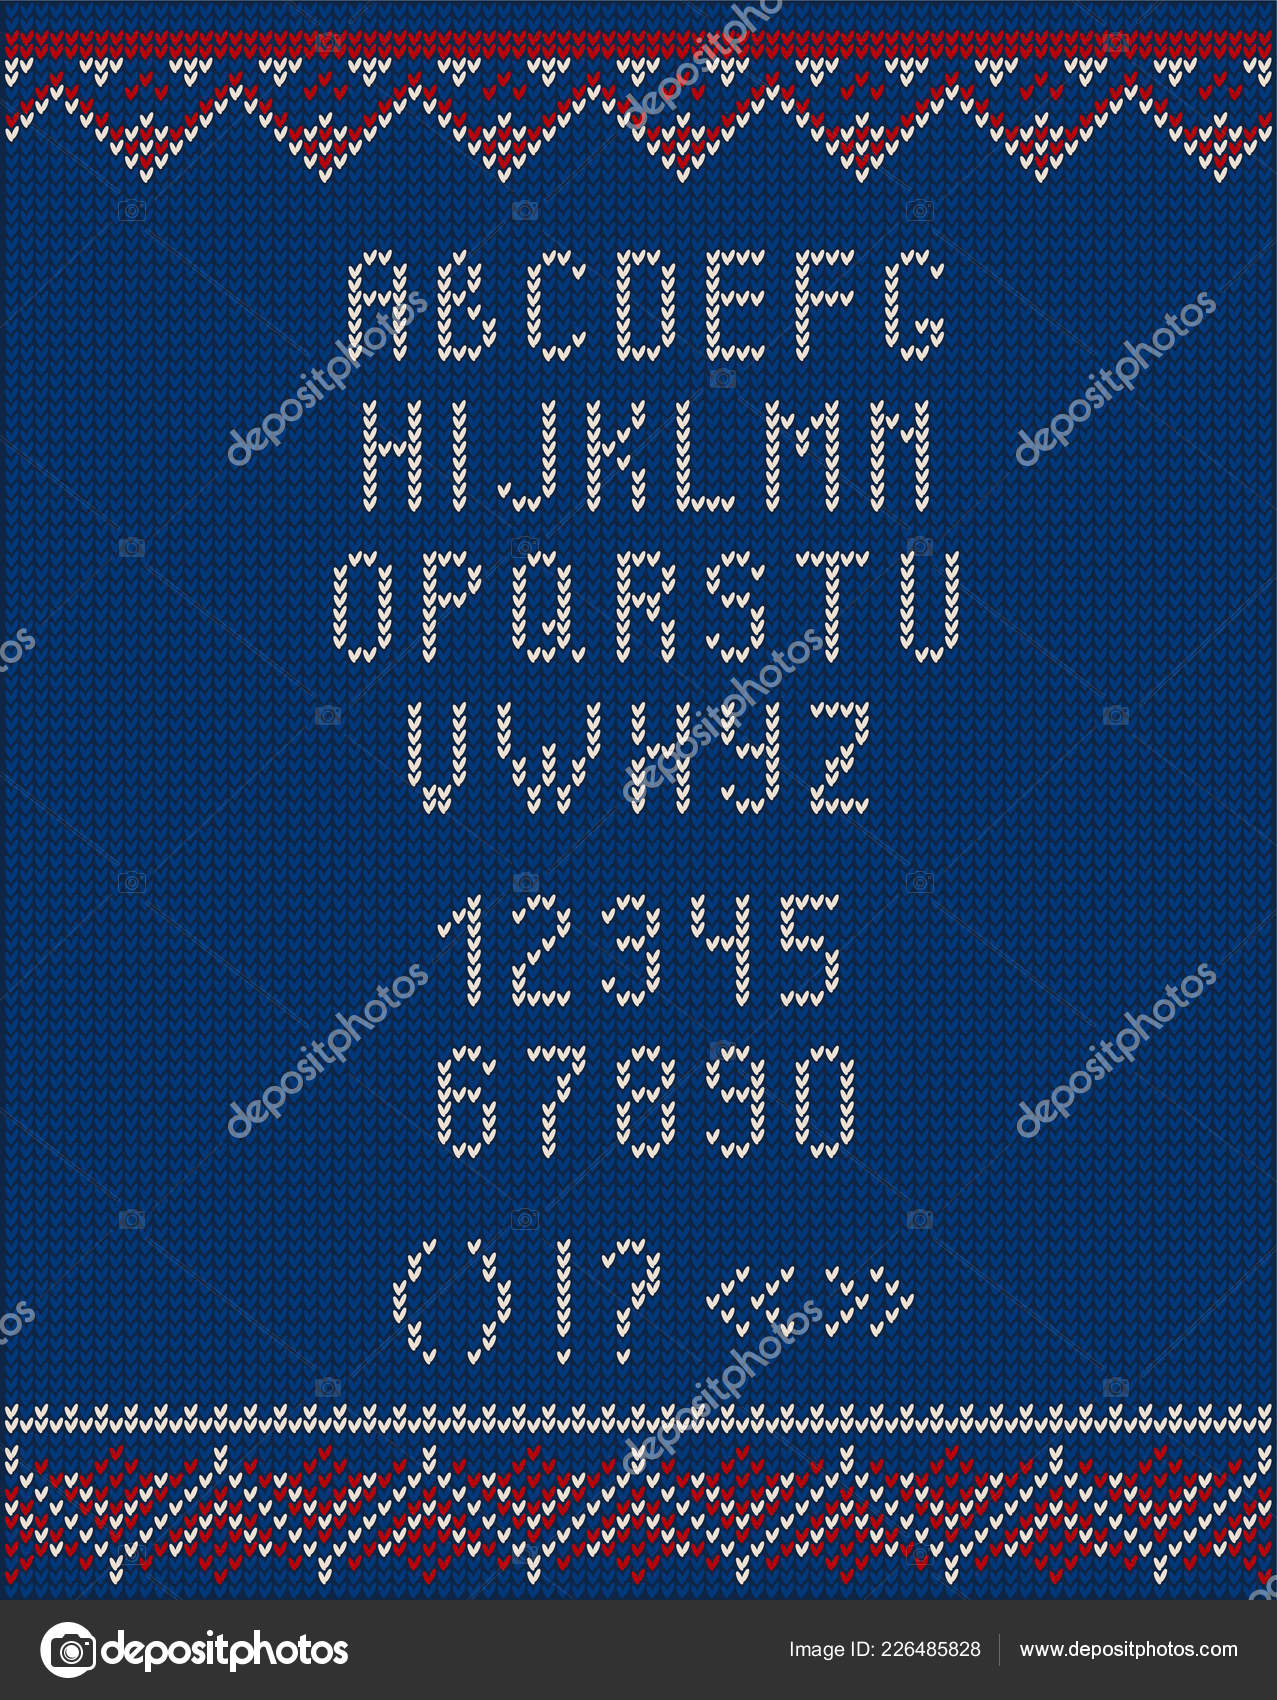 Ugly Sweater Font Vector Illustration Of Christmas Knitted